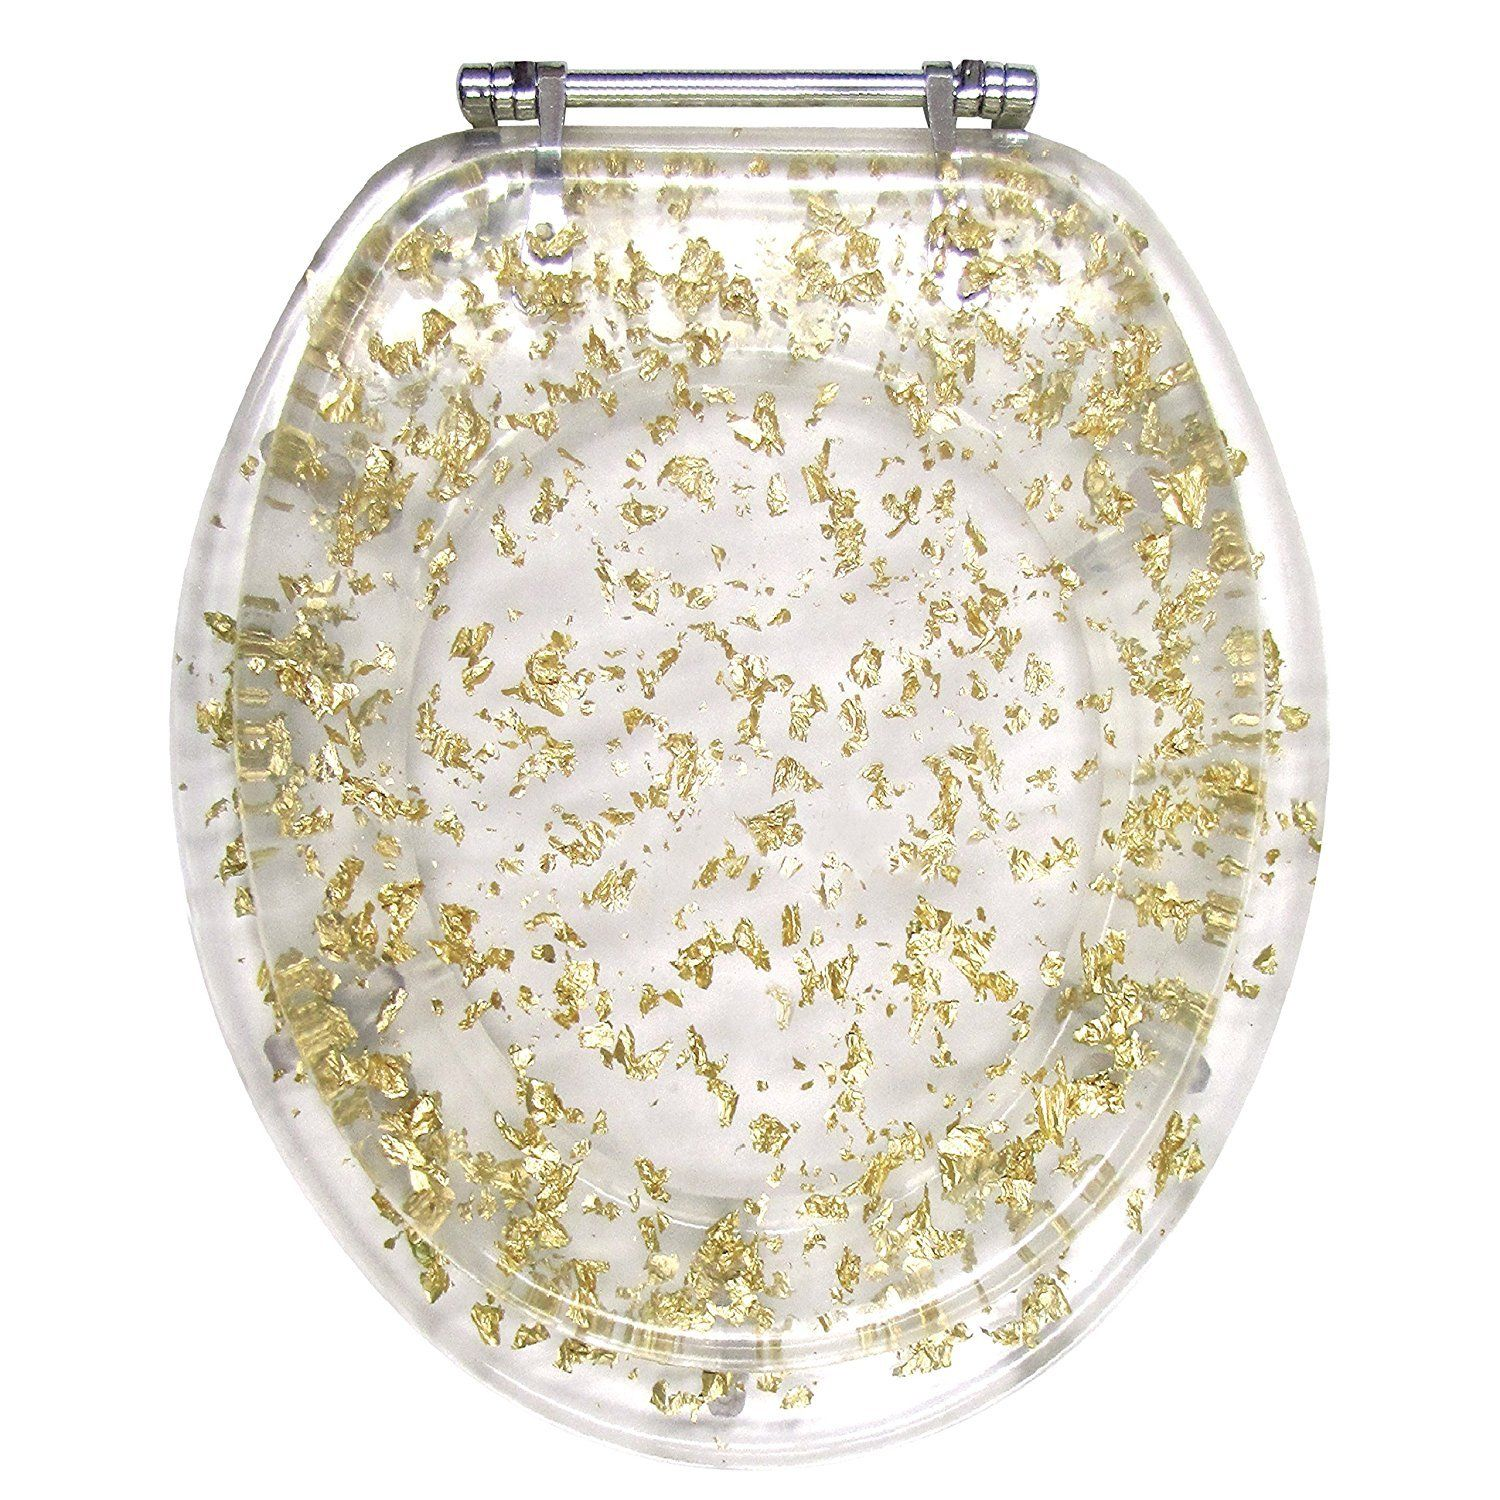 Wondrous Gold Foil Resin Acrylic Toilet Seat Elongated Size Chrome Hinges Walmart Com Caraccident5 Cool Chair Designs And Ideas Caraccident5Info